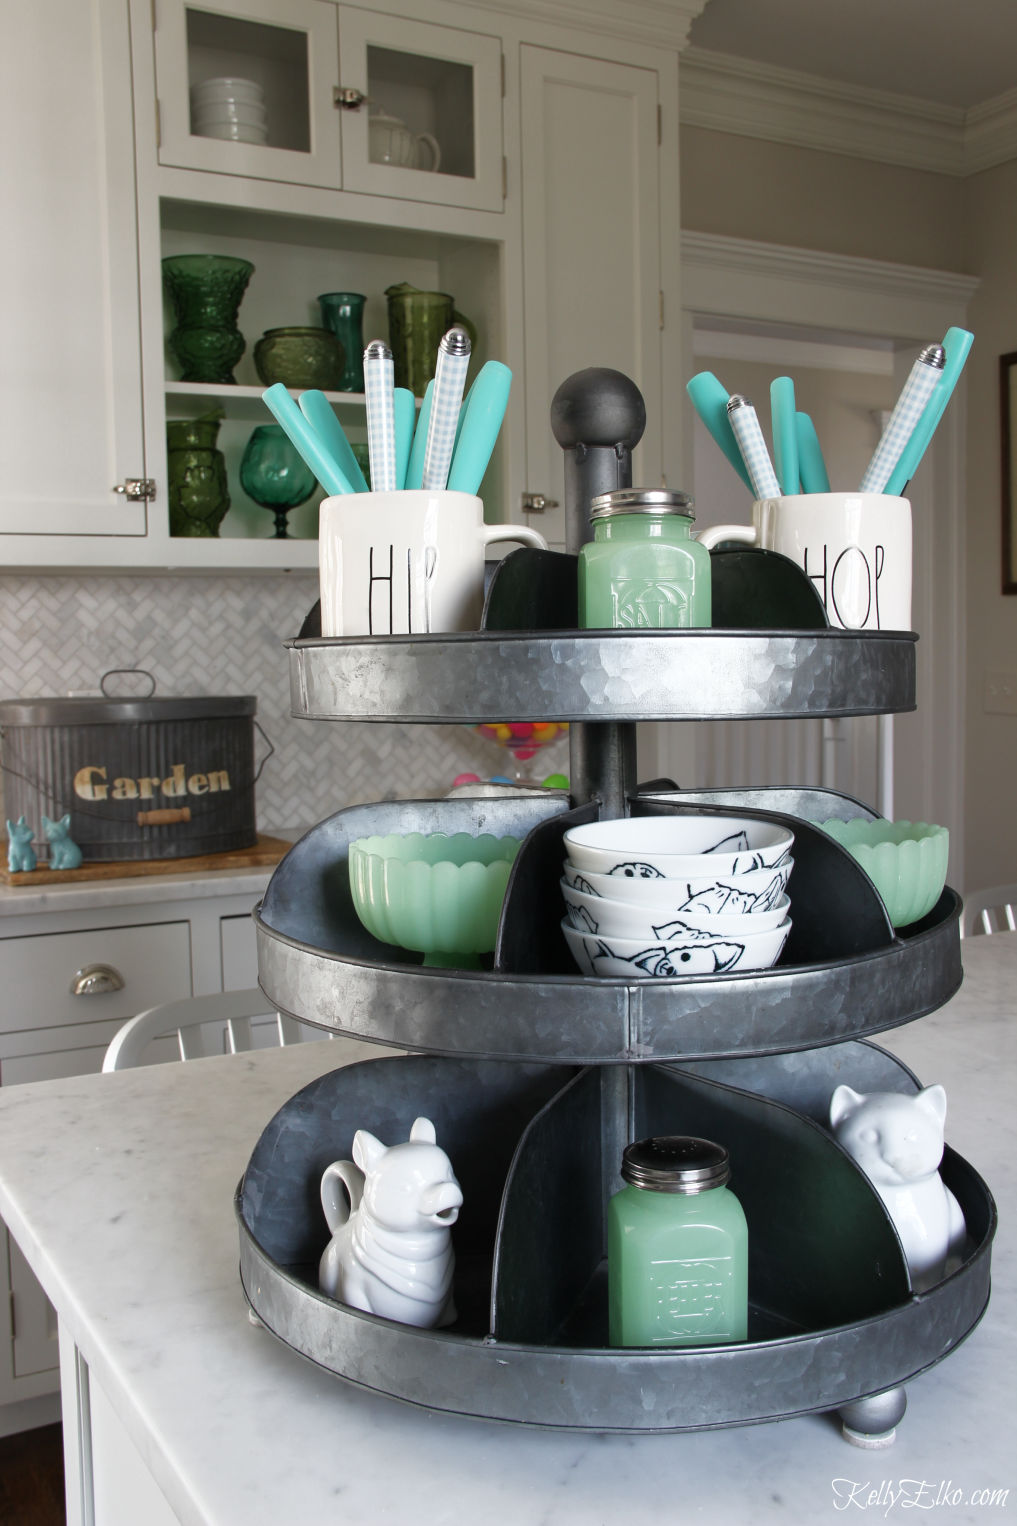 Love this tiered tray for storing everyday kitchen essentials kellyelko.com #farmhousekitchen #whitekitchen #industrialdecor #trays #tieredtray #farmhousedecor #fixerupperstyle #springdecor #jadeite #raedunn #kitchendecor #kellyelko